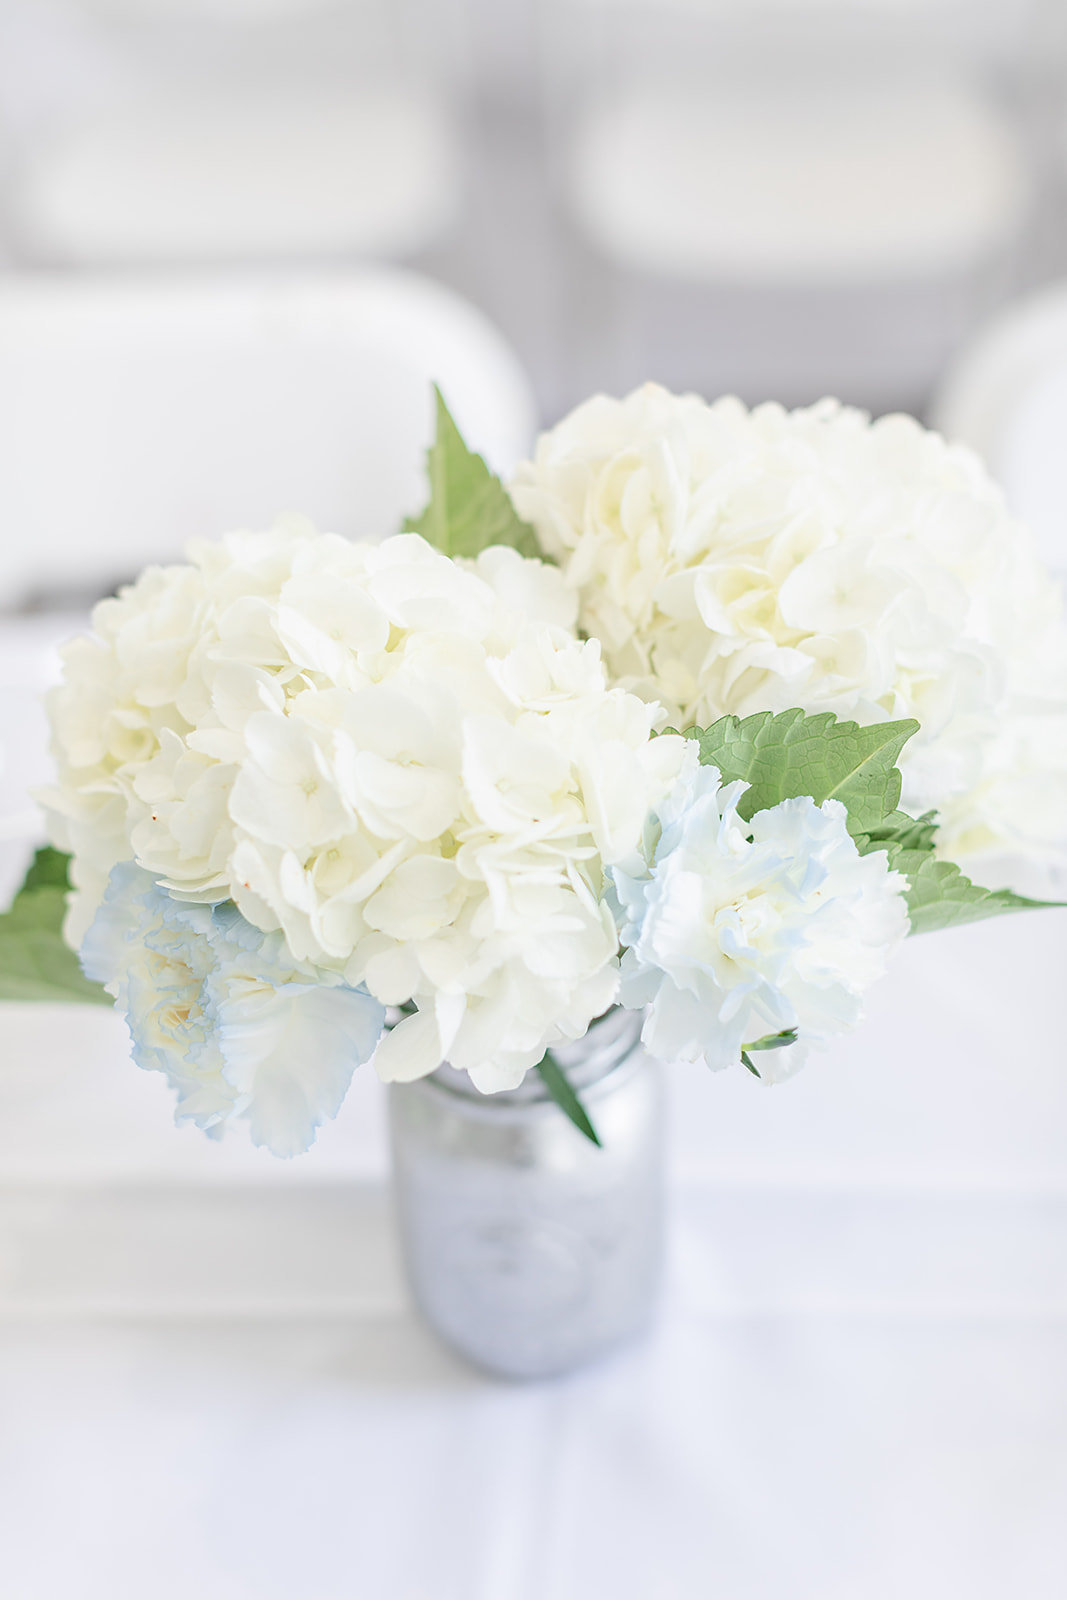 New Jersey bridal shower tablescape with mason jar and white and light blue floral arrangement